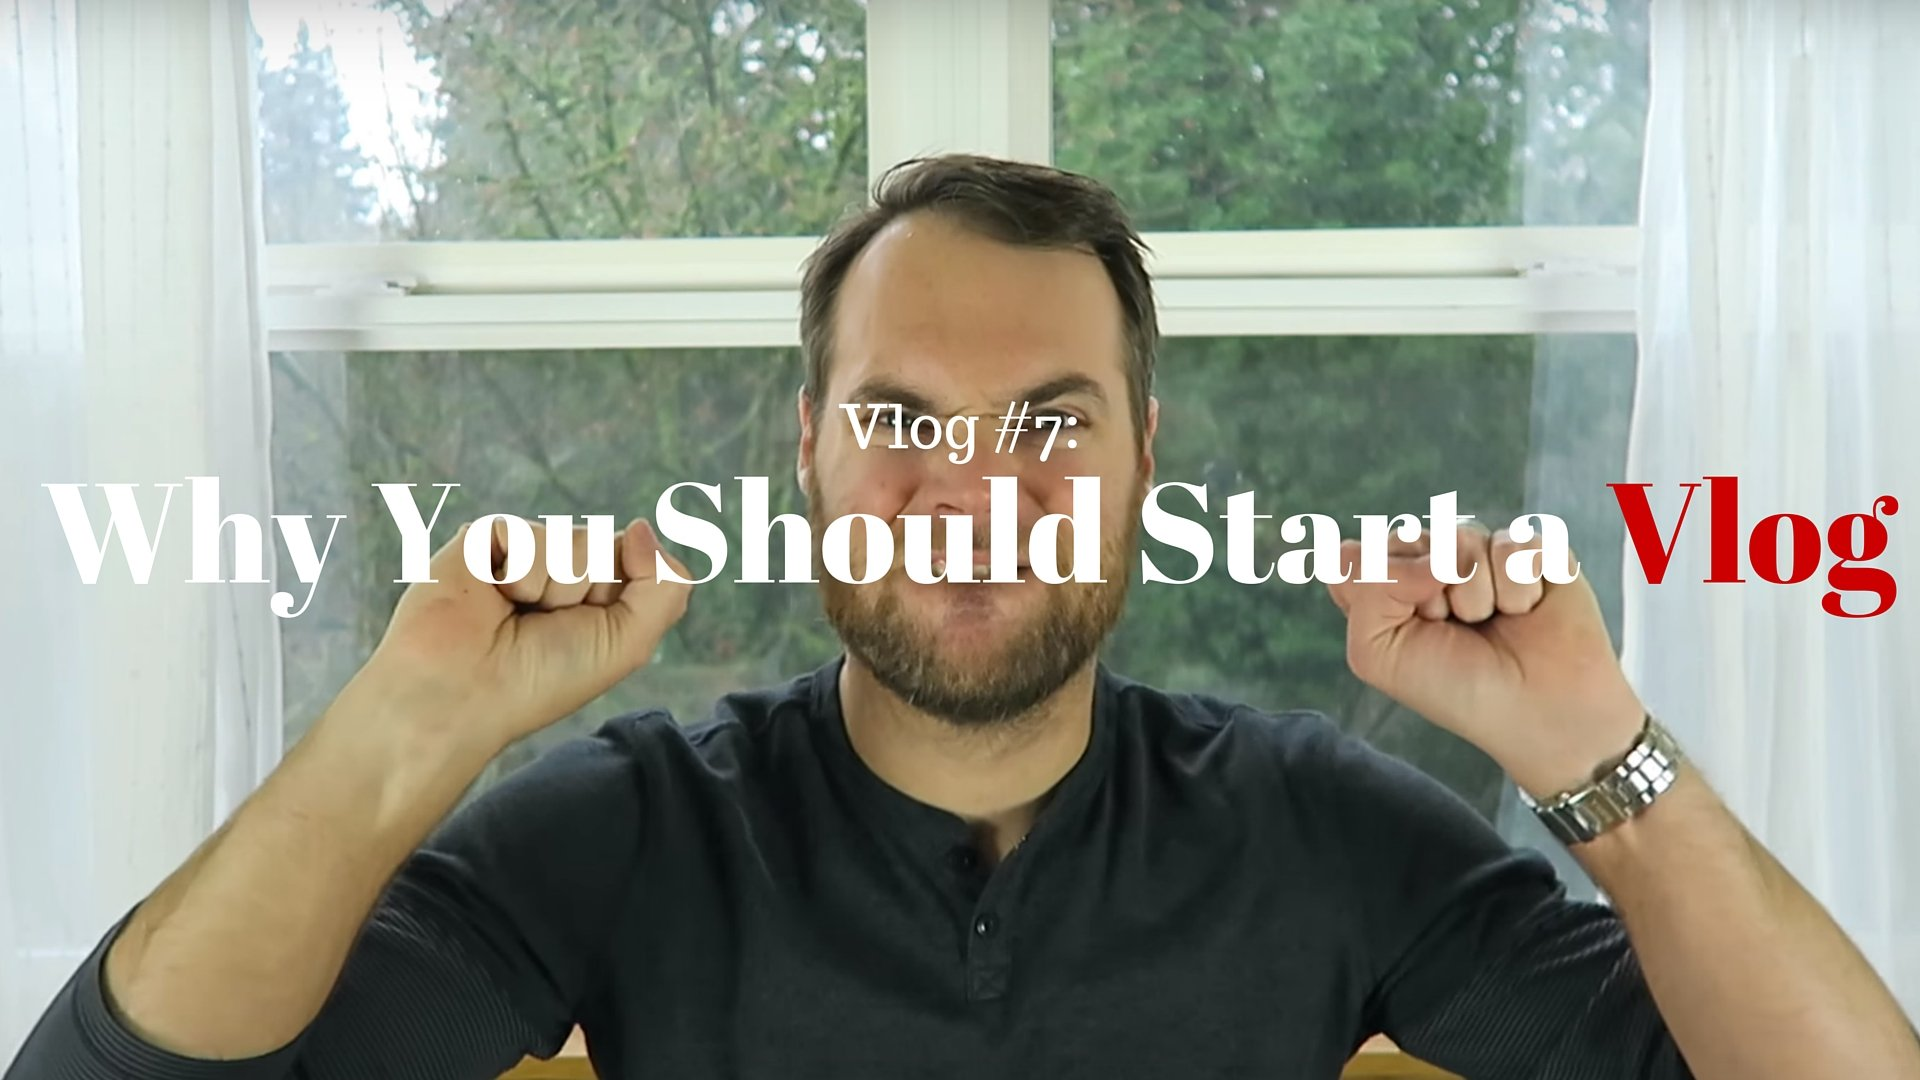 Why You Should Start a Vlog (Even if You Think No One Cares)